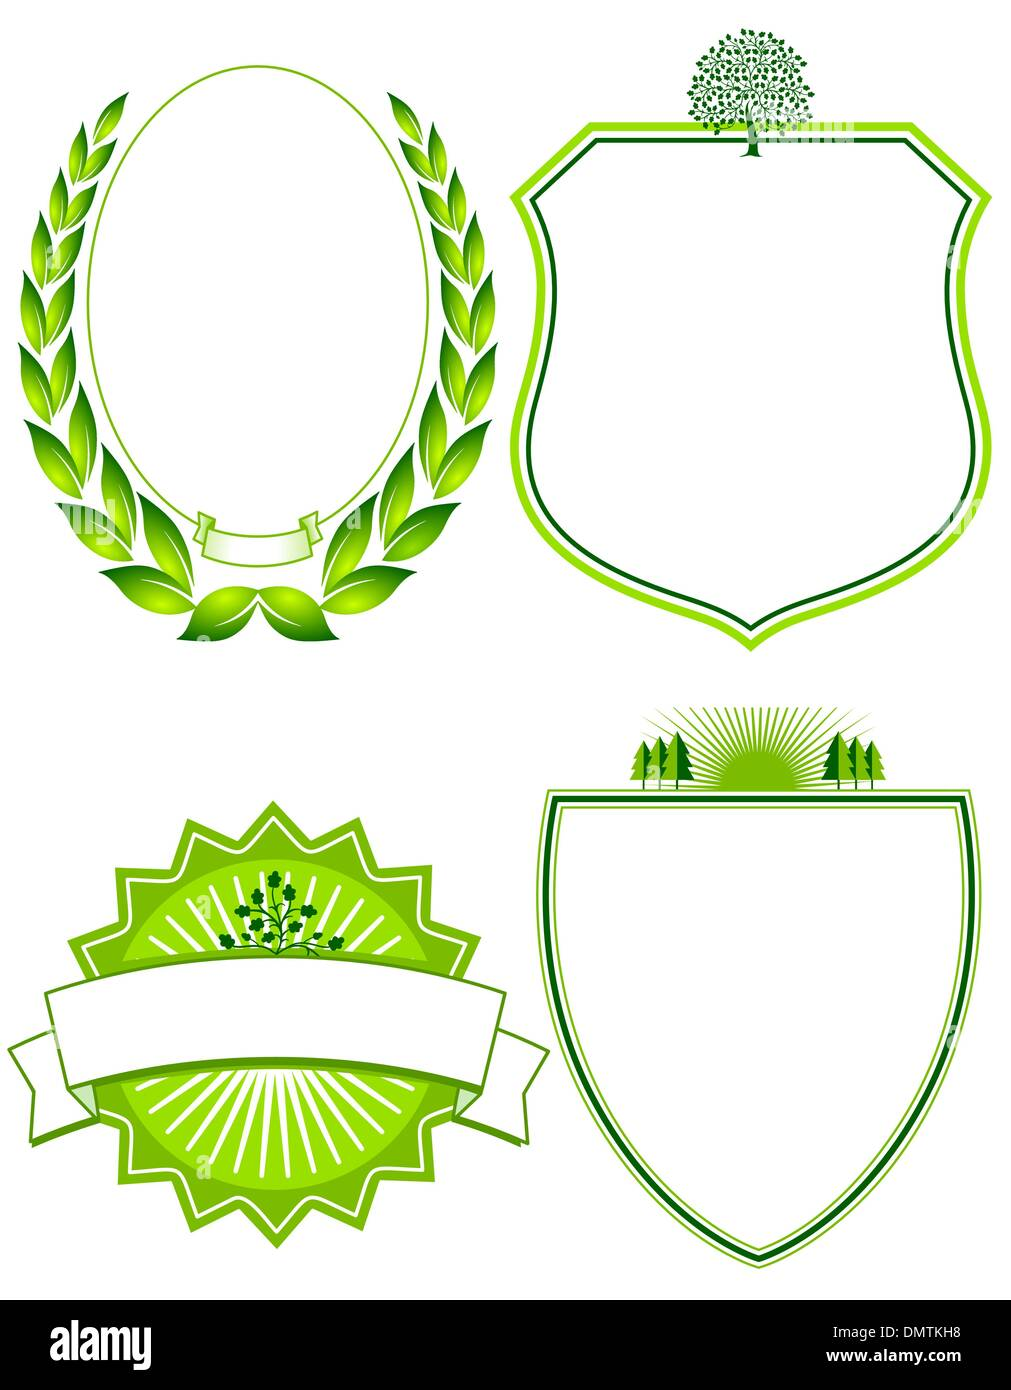 four Ecological arms and signs - Stock Image